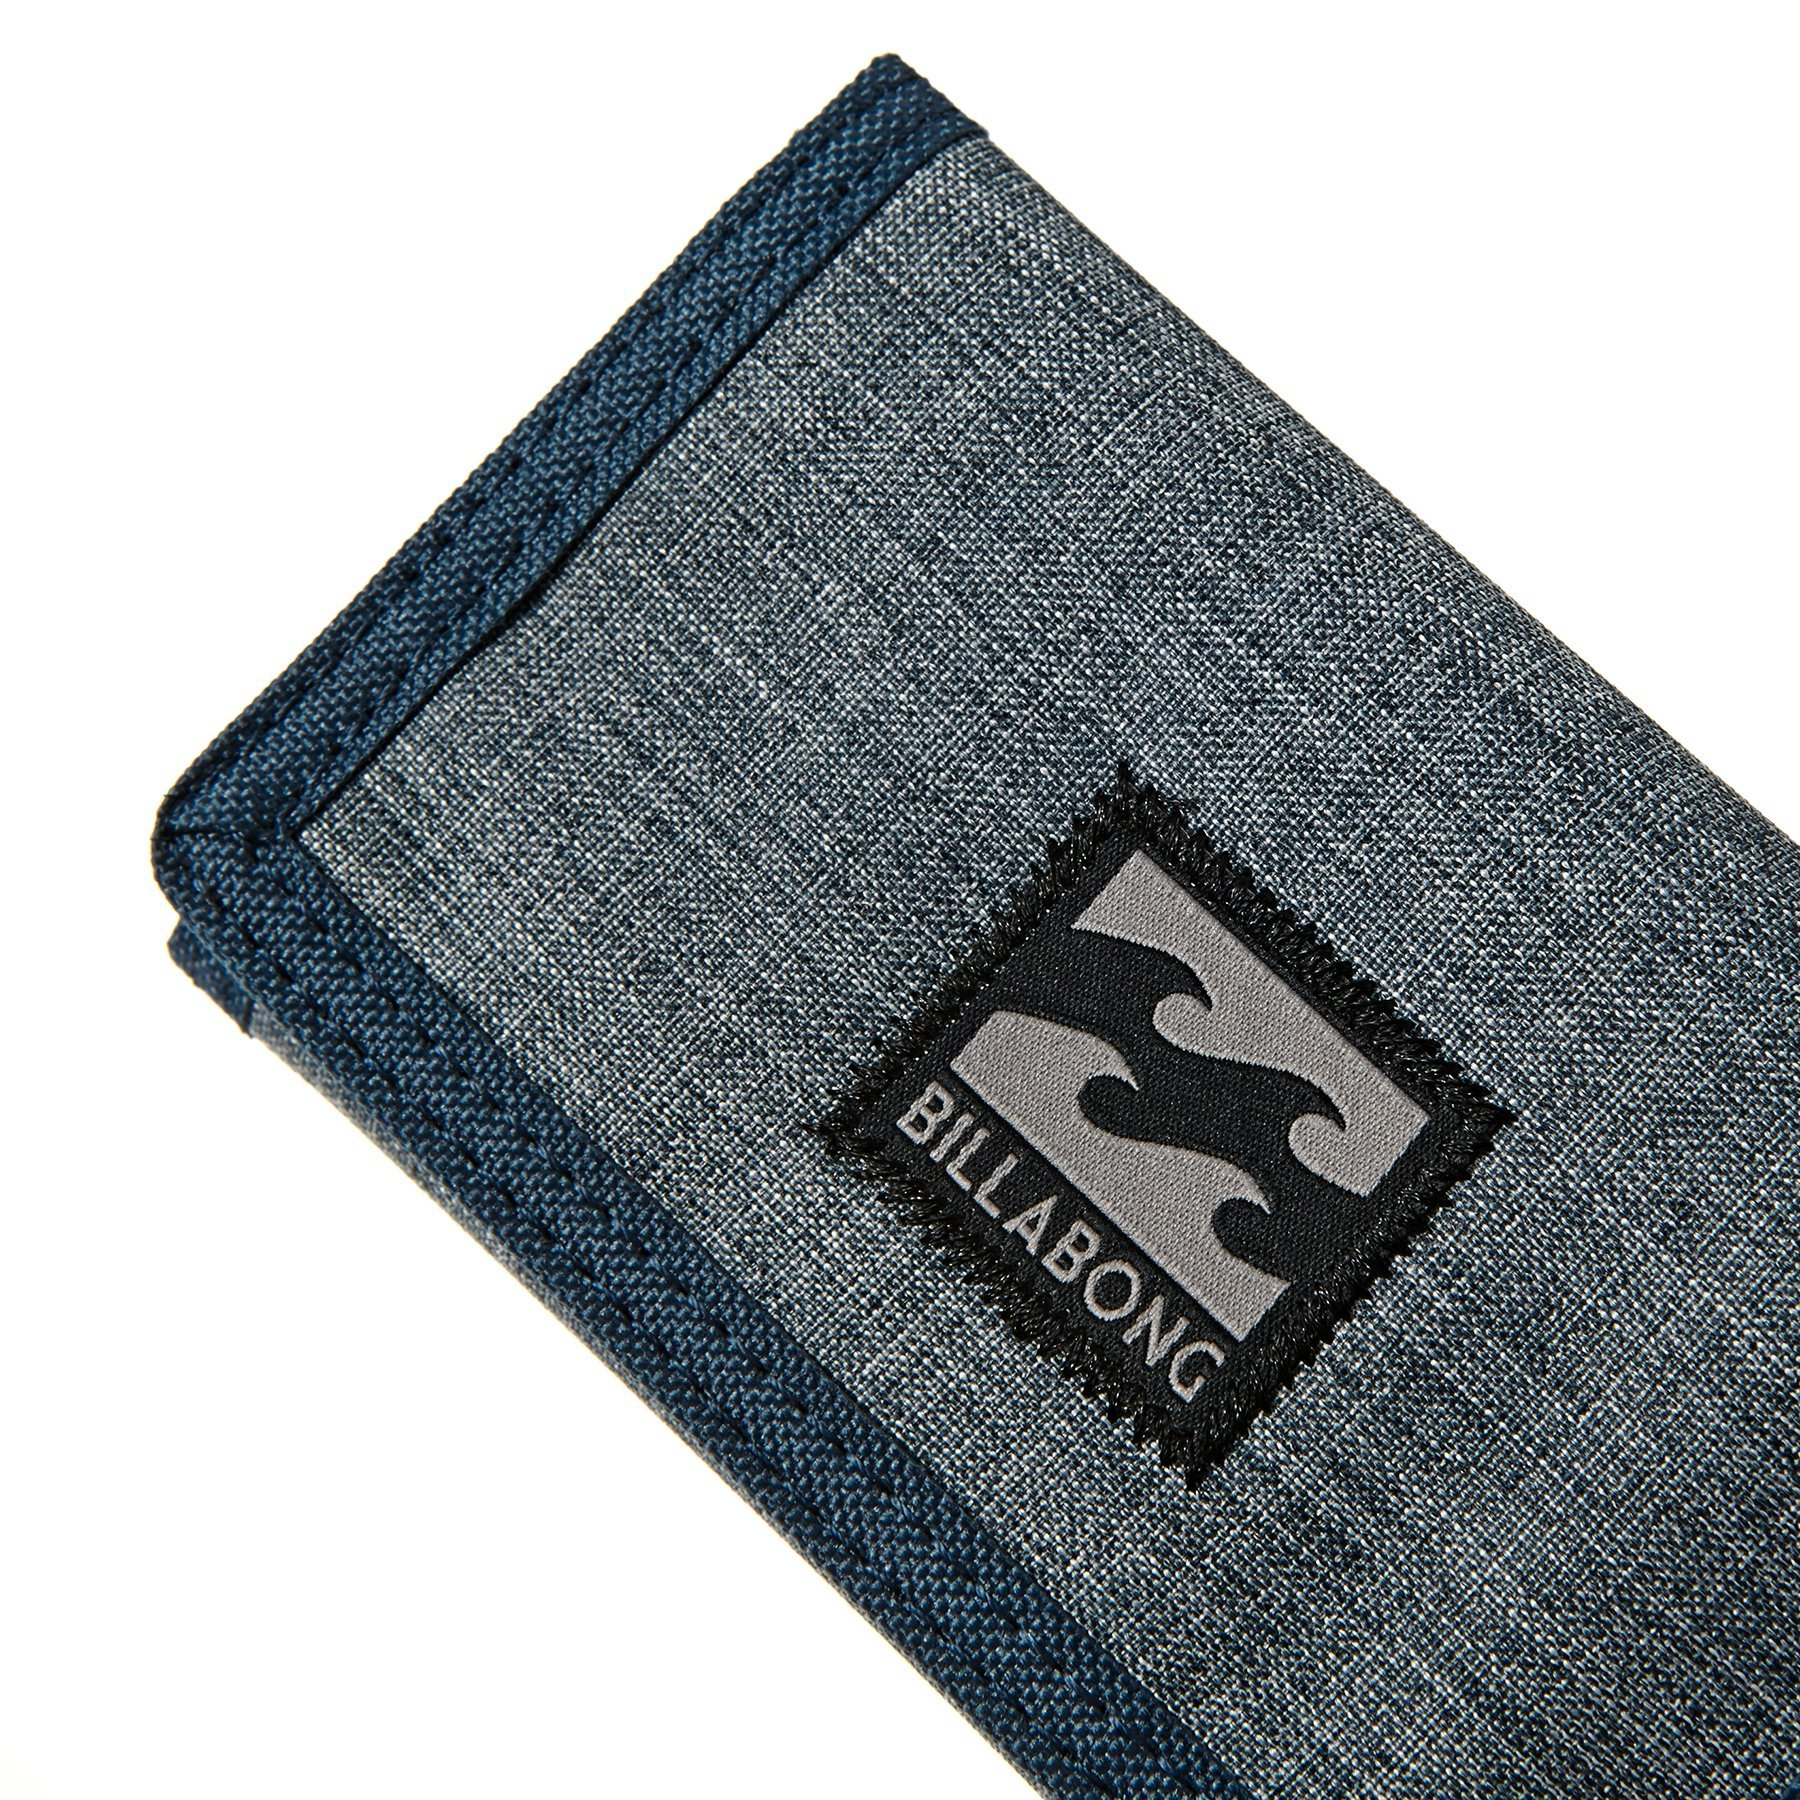 Billabong Atom Wallet One Size Dark Slate Heather by Billabong (Image #7)